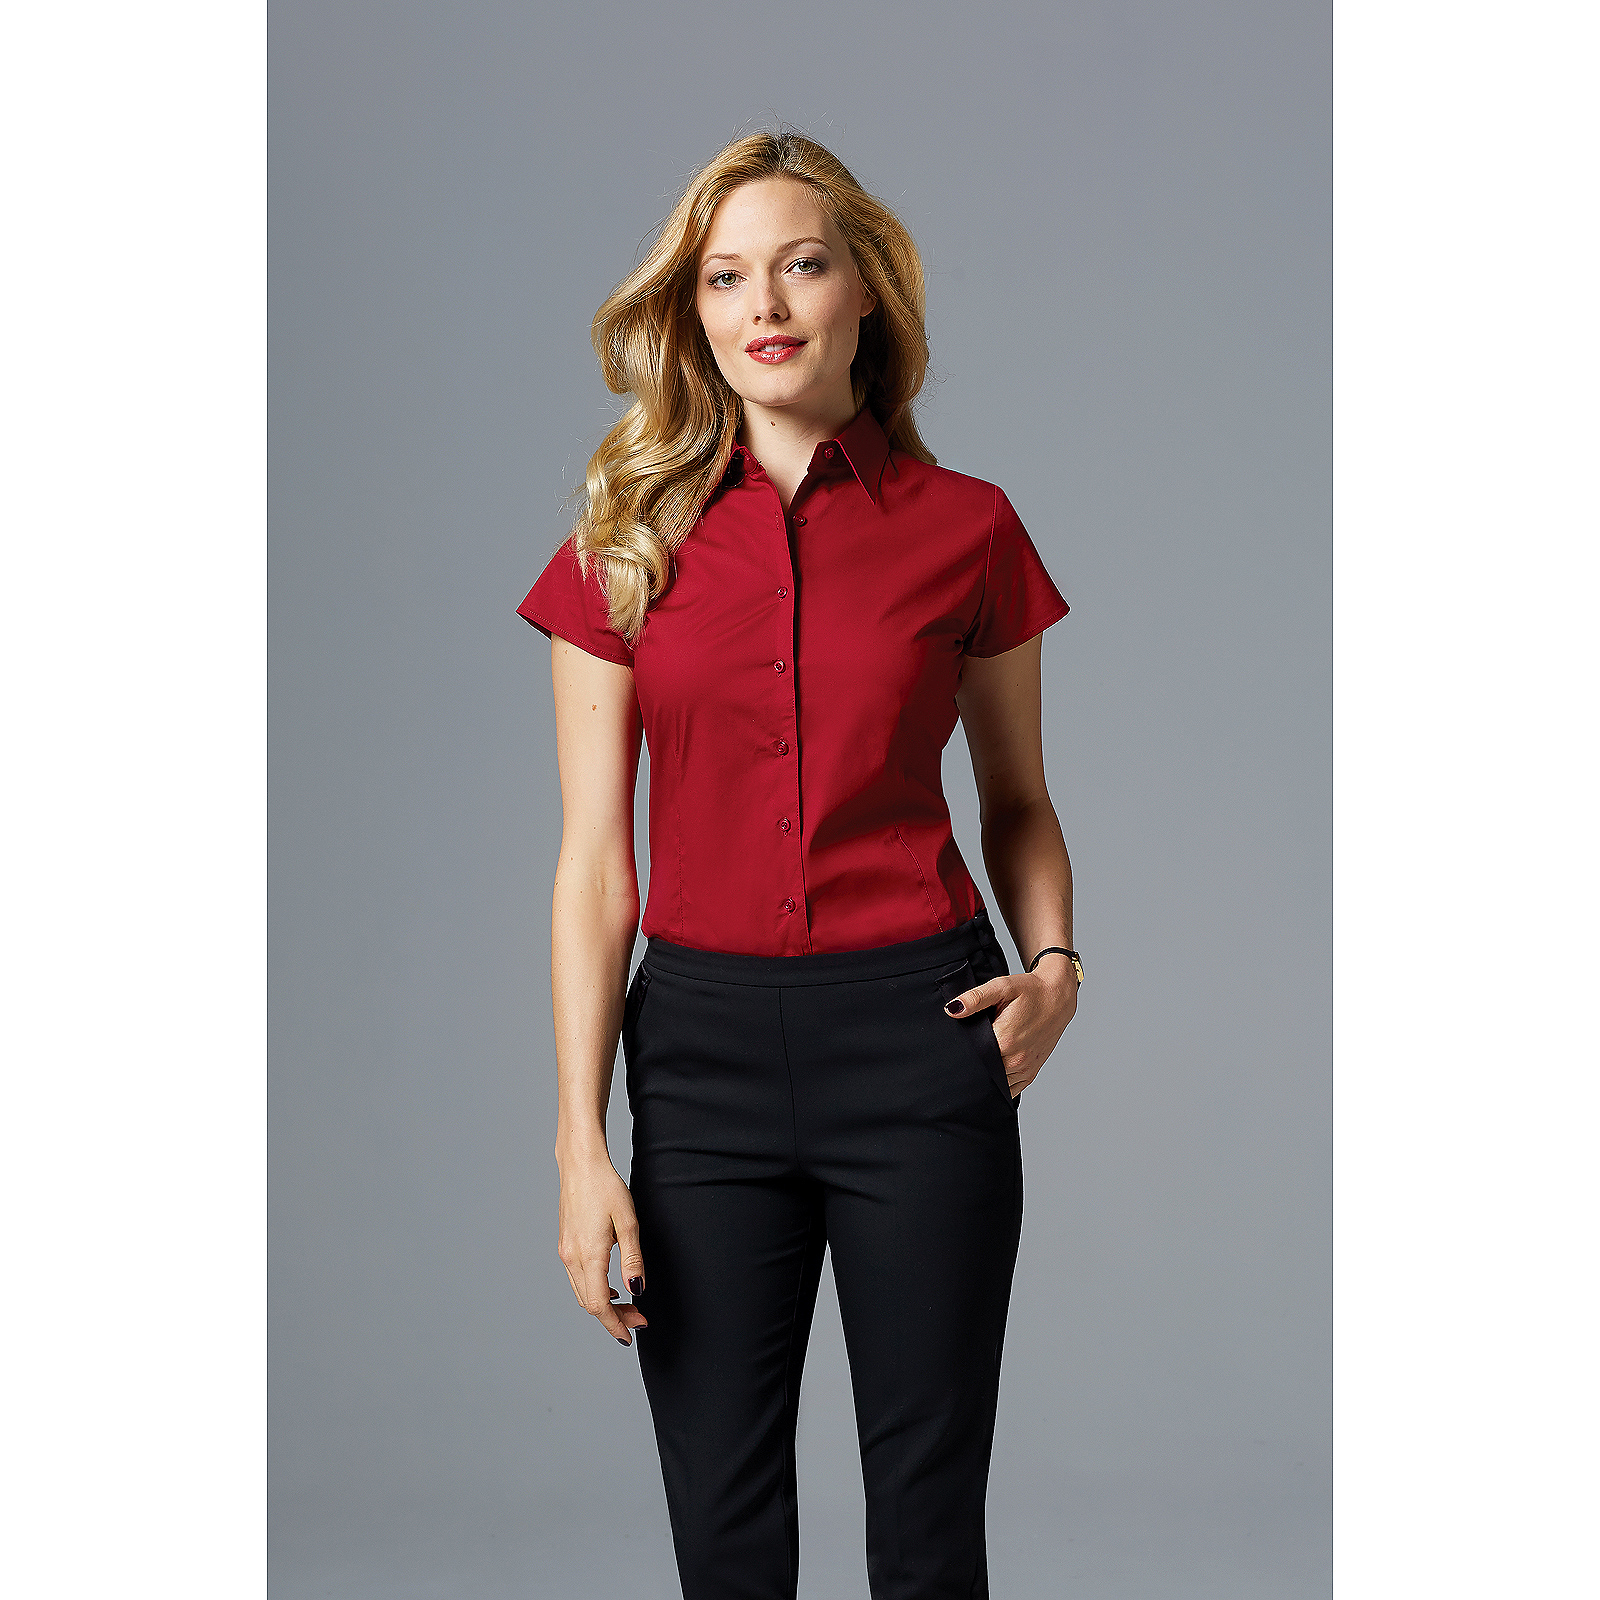 b597f60ae23 Details about Sol Women Ladies Excess Short Sleeve Fitted Work Shirt Smart  Casual Formal Plain